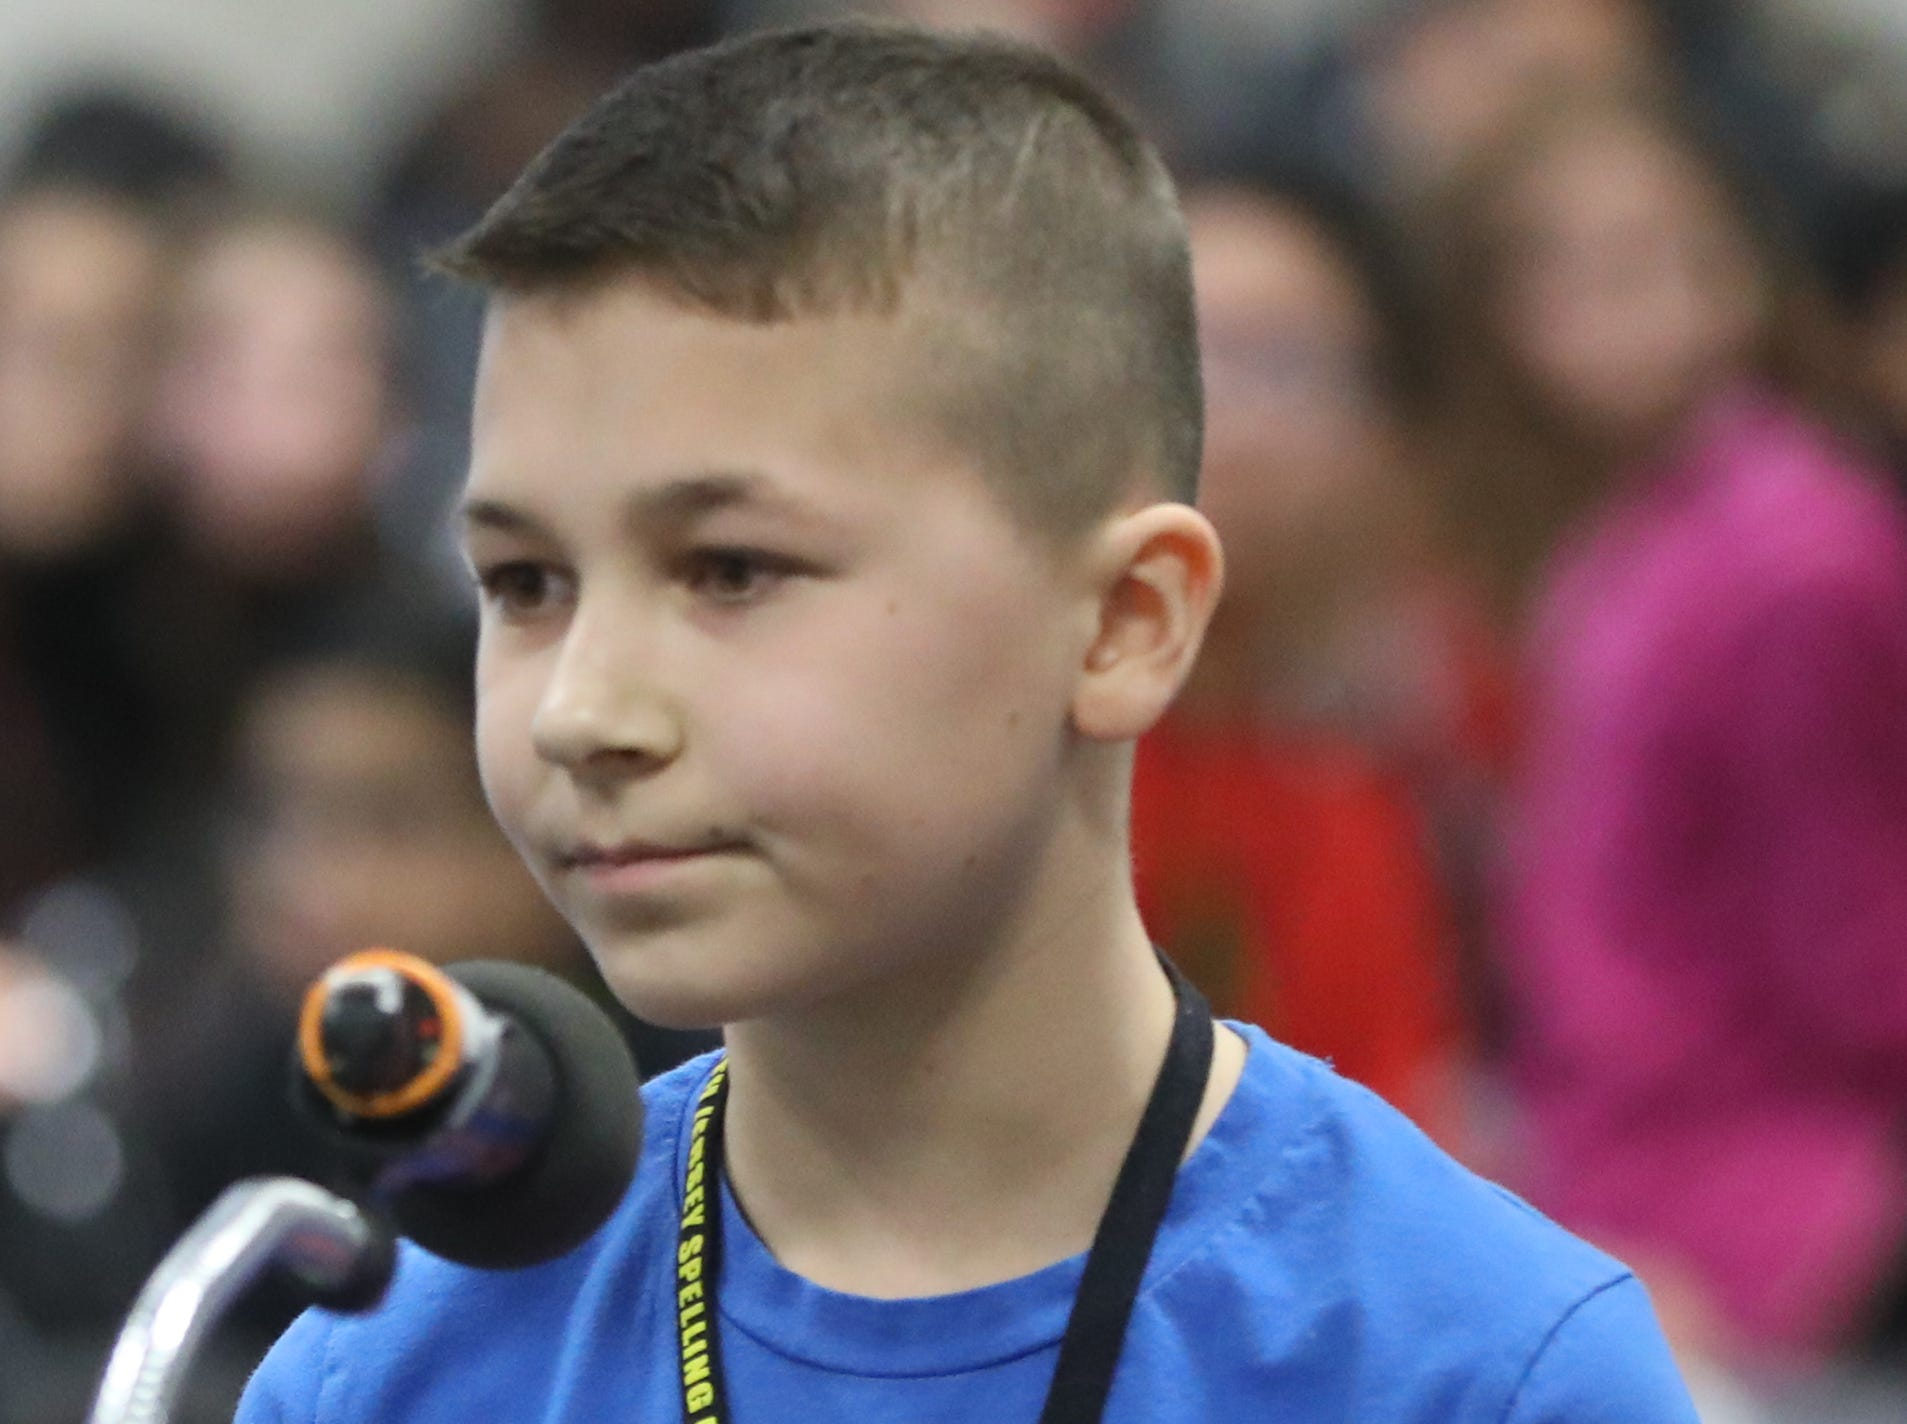 Eric Moroz, of Wallington, competes in the first round of the 2019 North Jersey Spelling Bee, in Paramus. Thursday, March 14, 2019